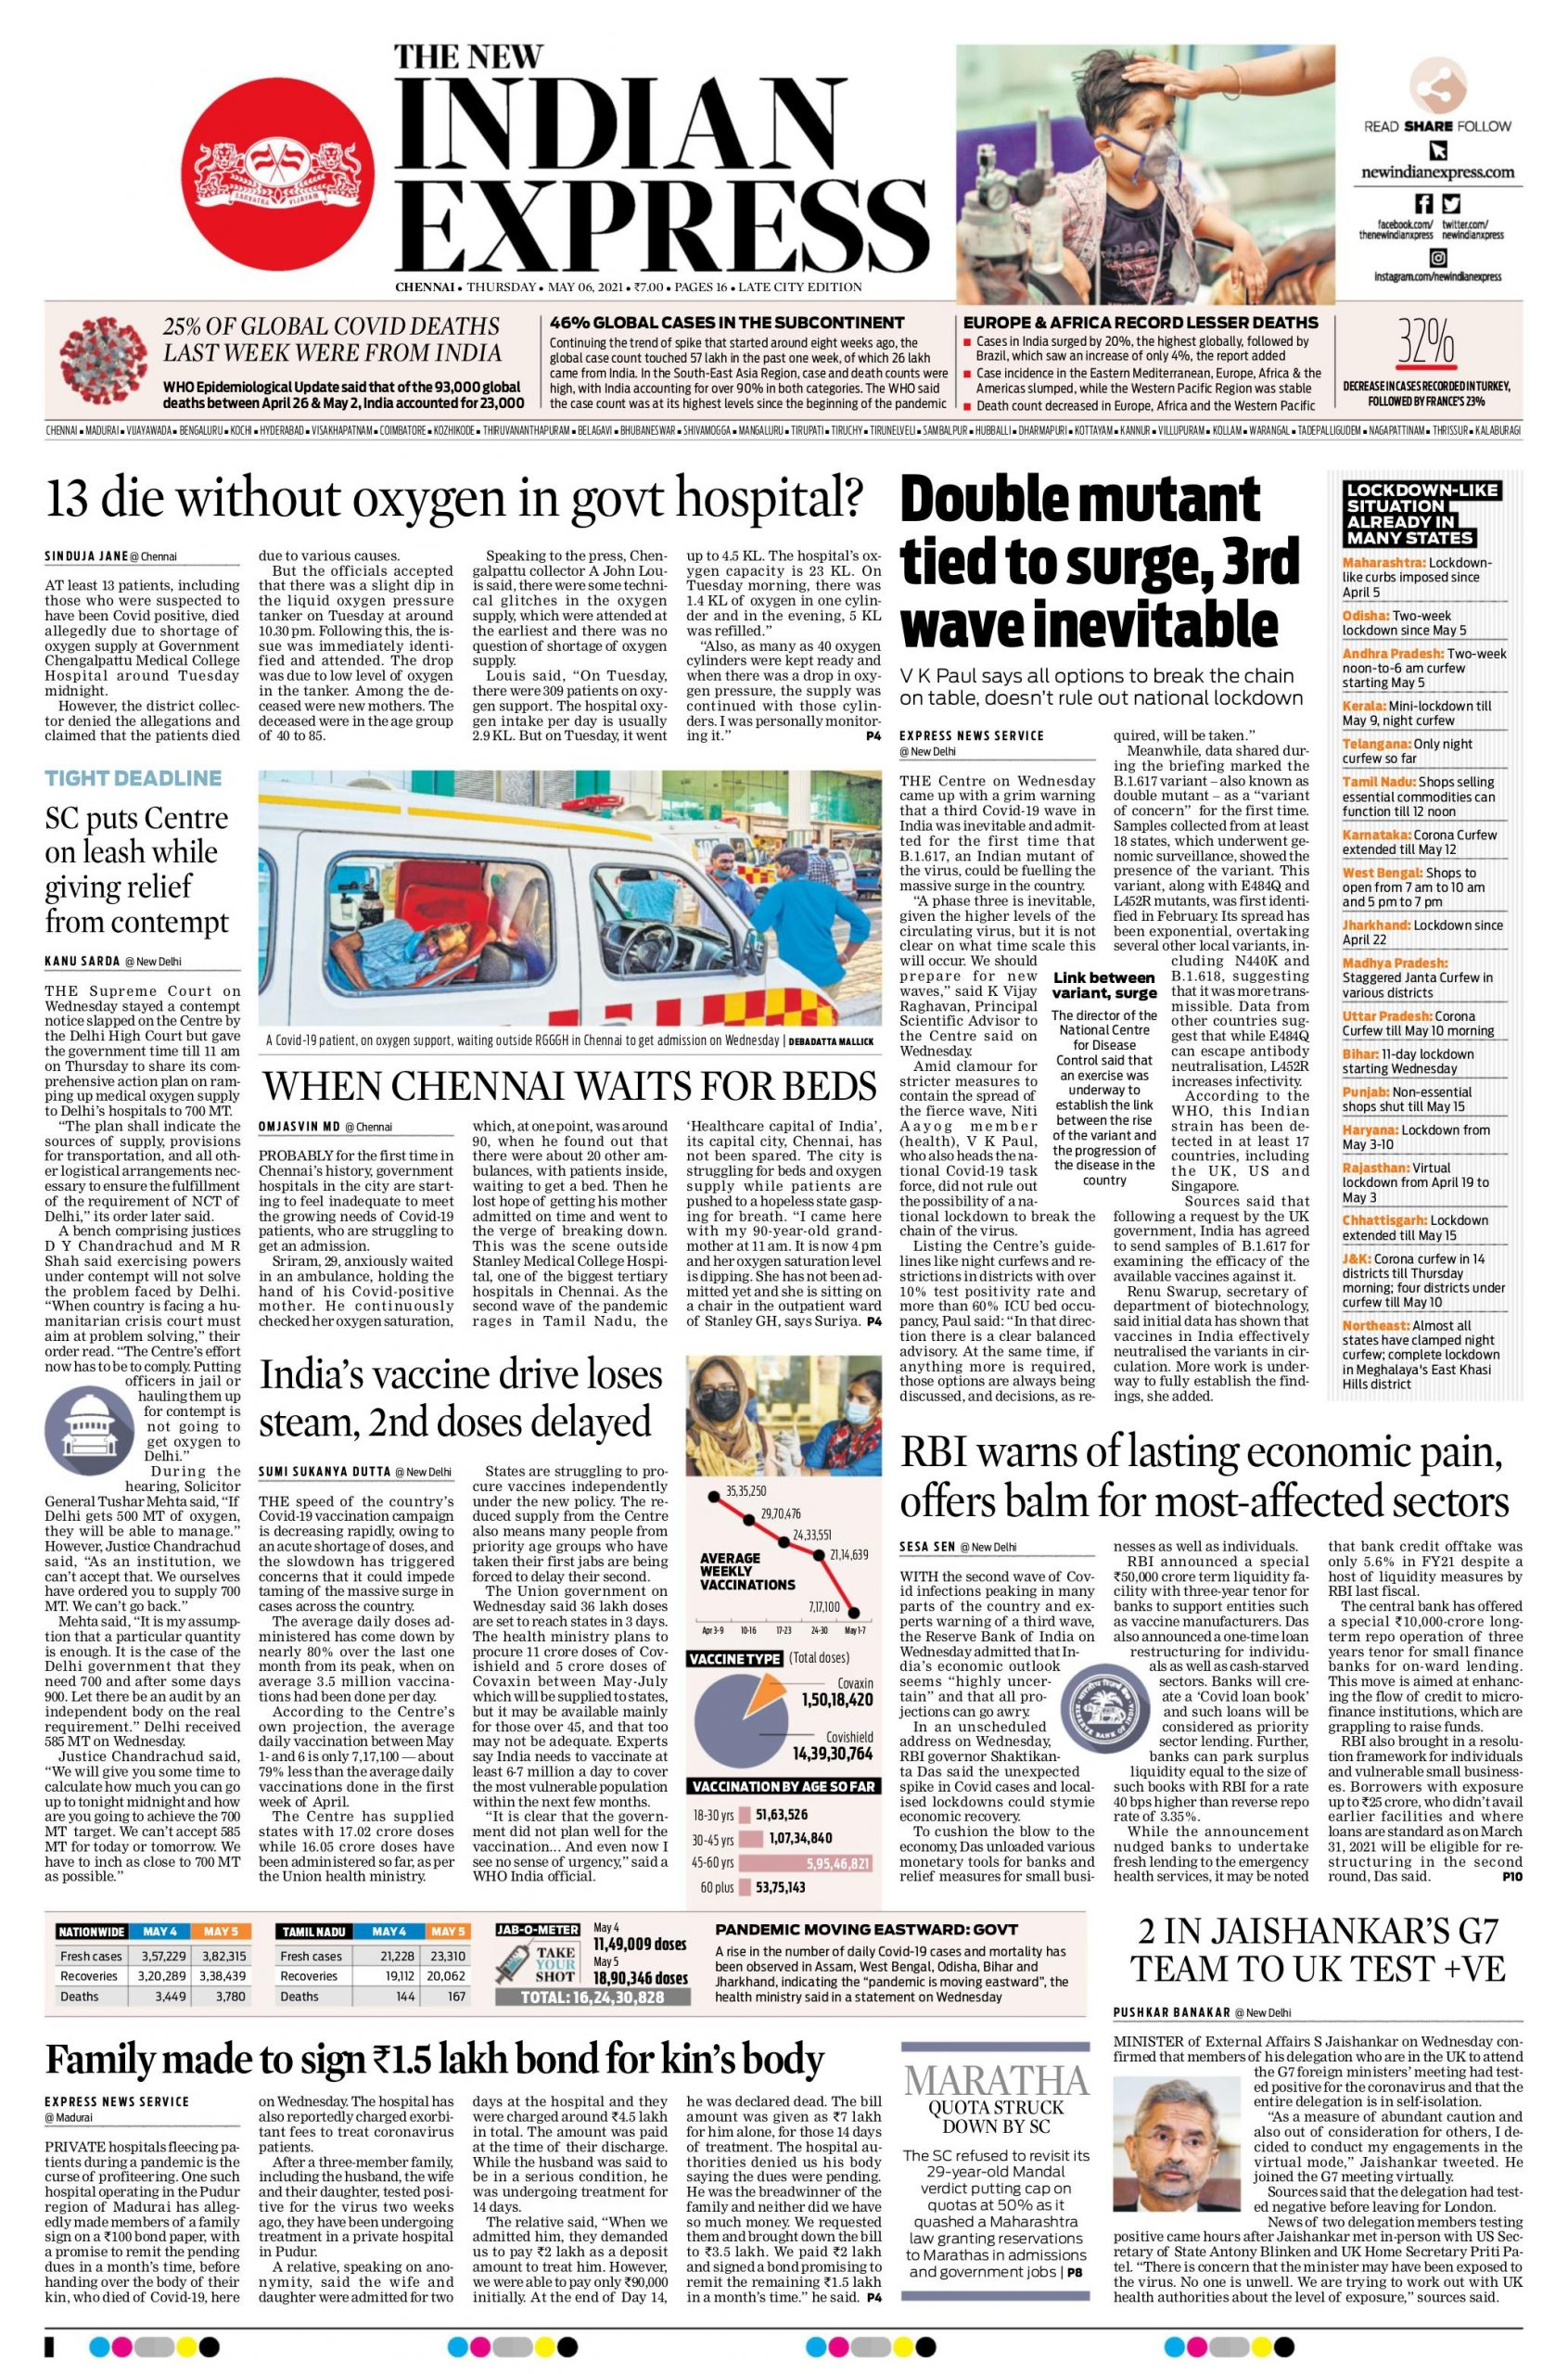 The New Indian Express 6th May 2021